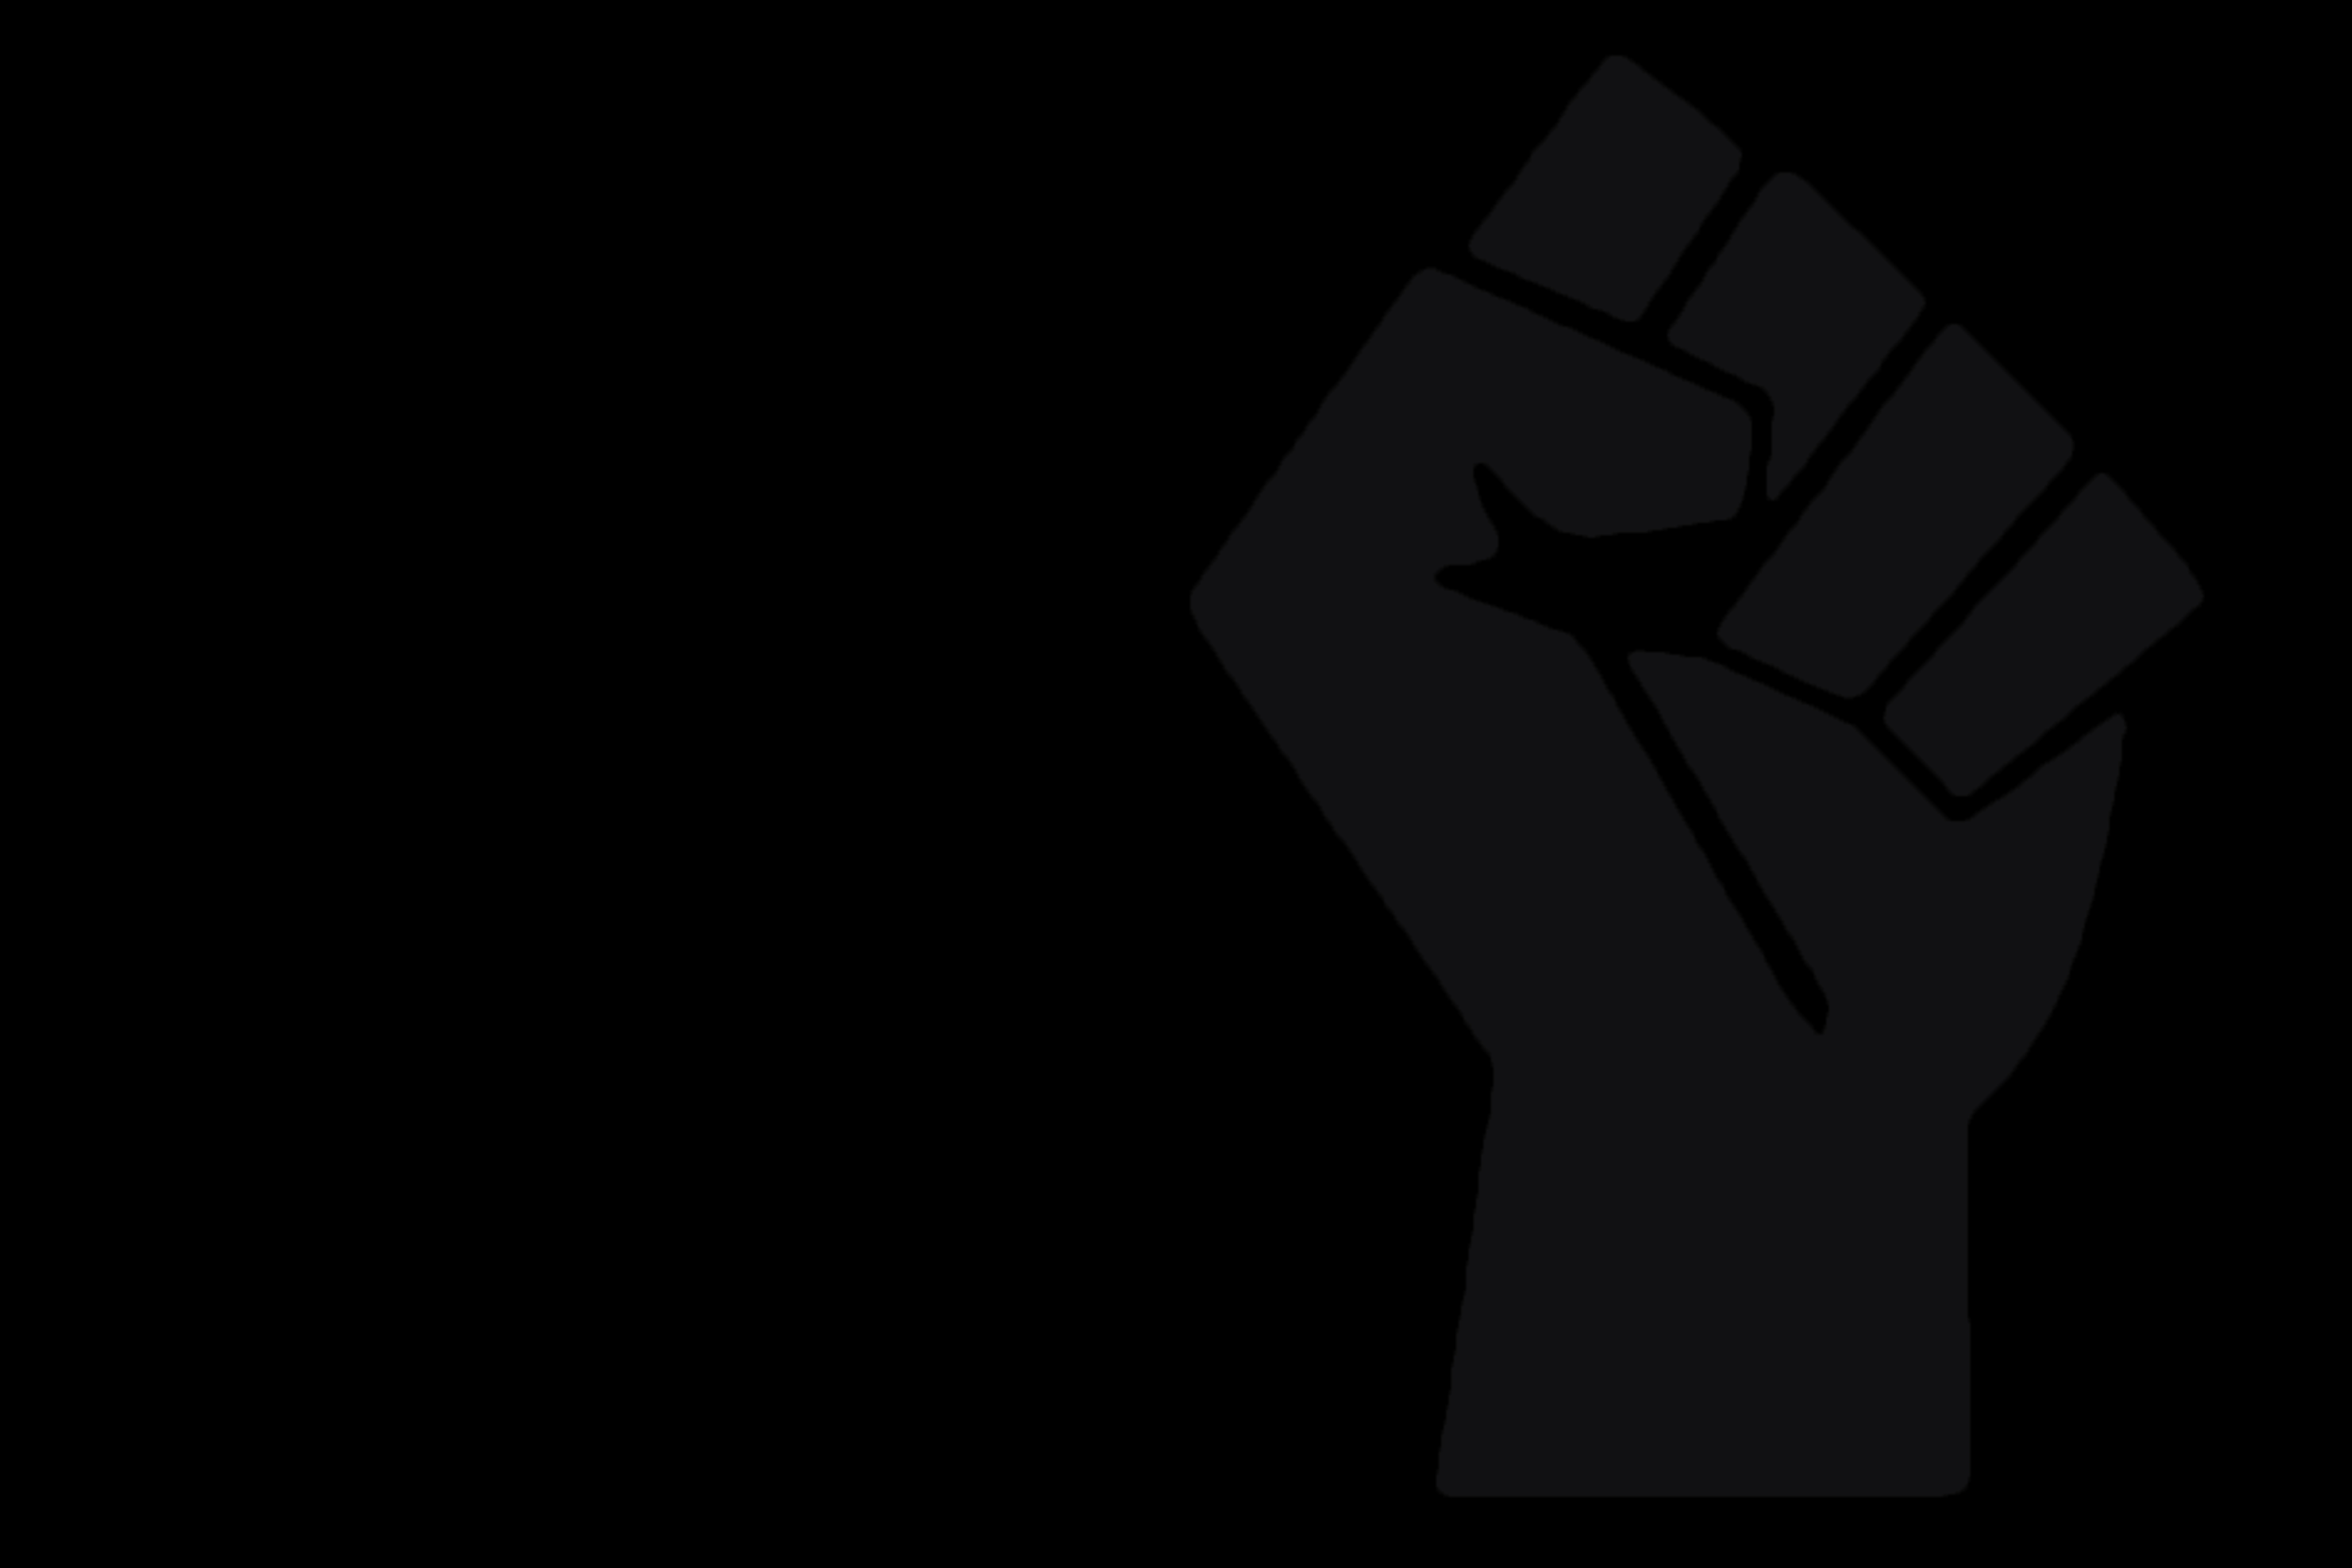 A fist held in the 'black power' salute